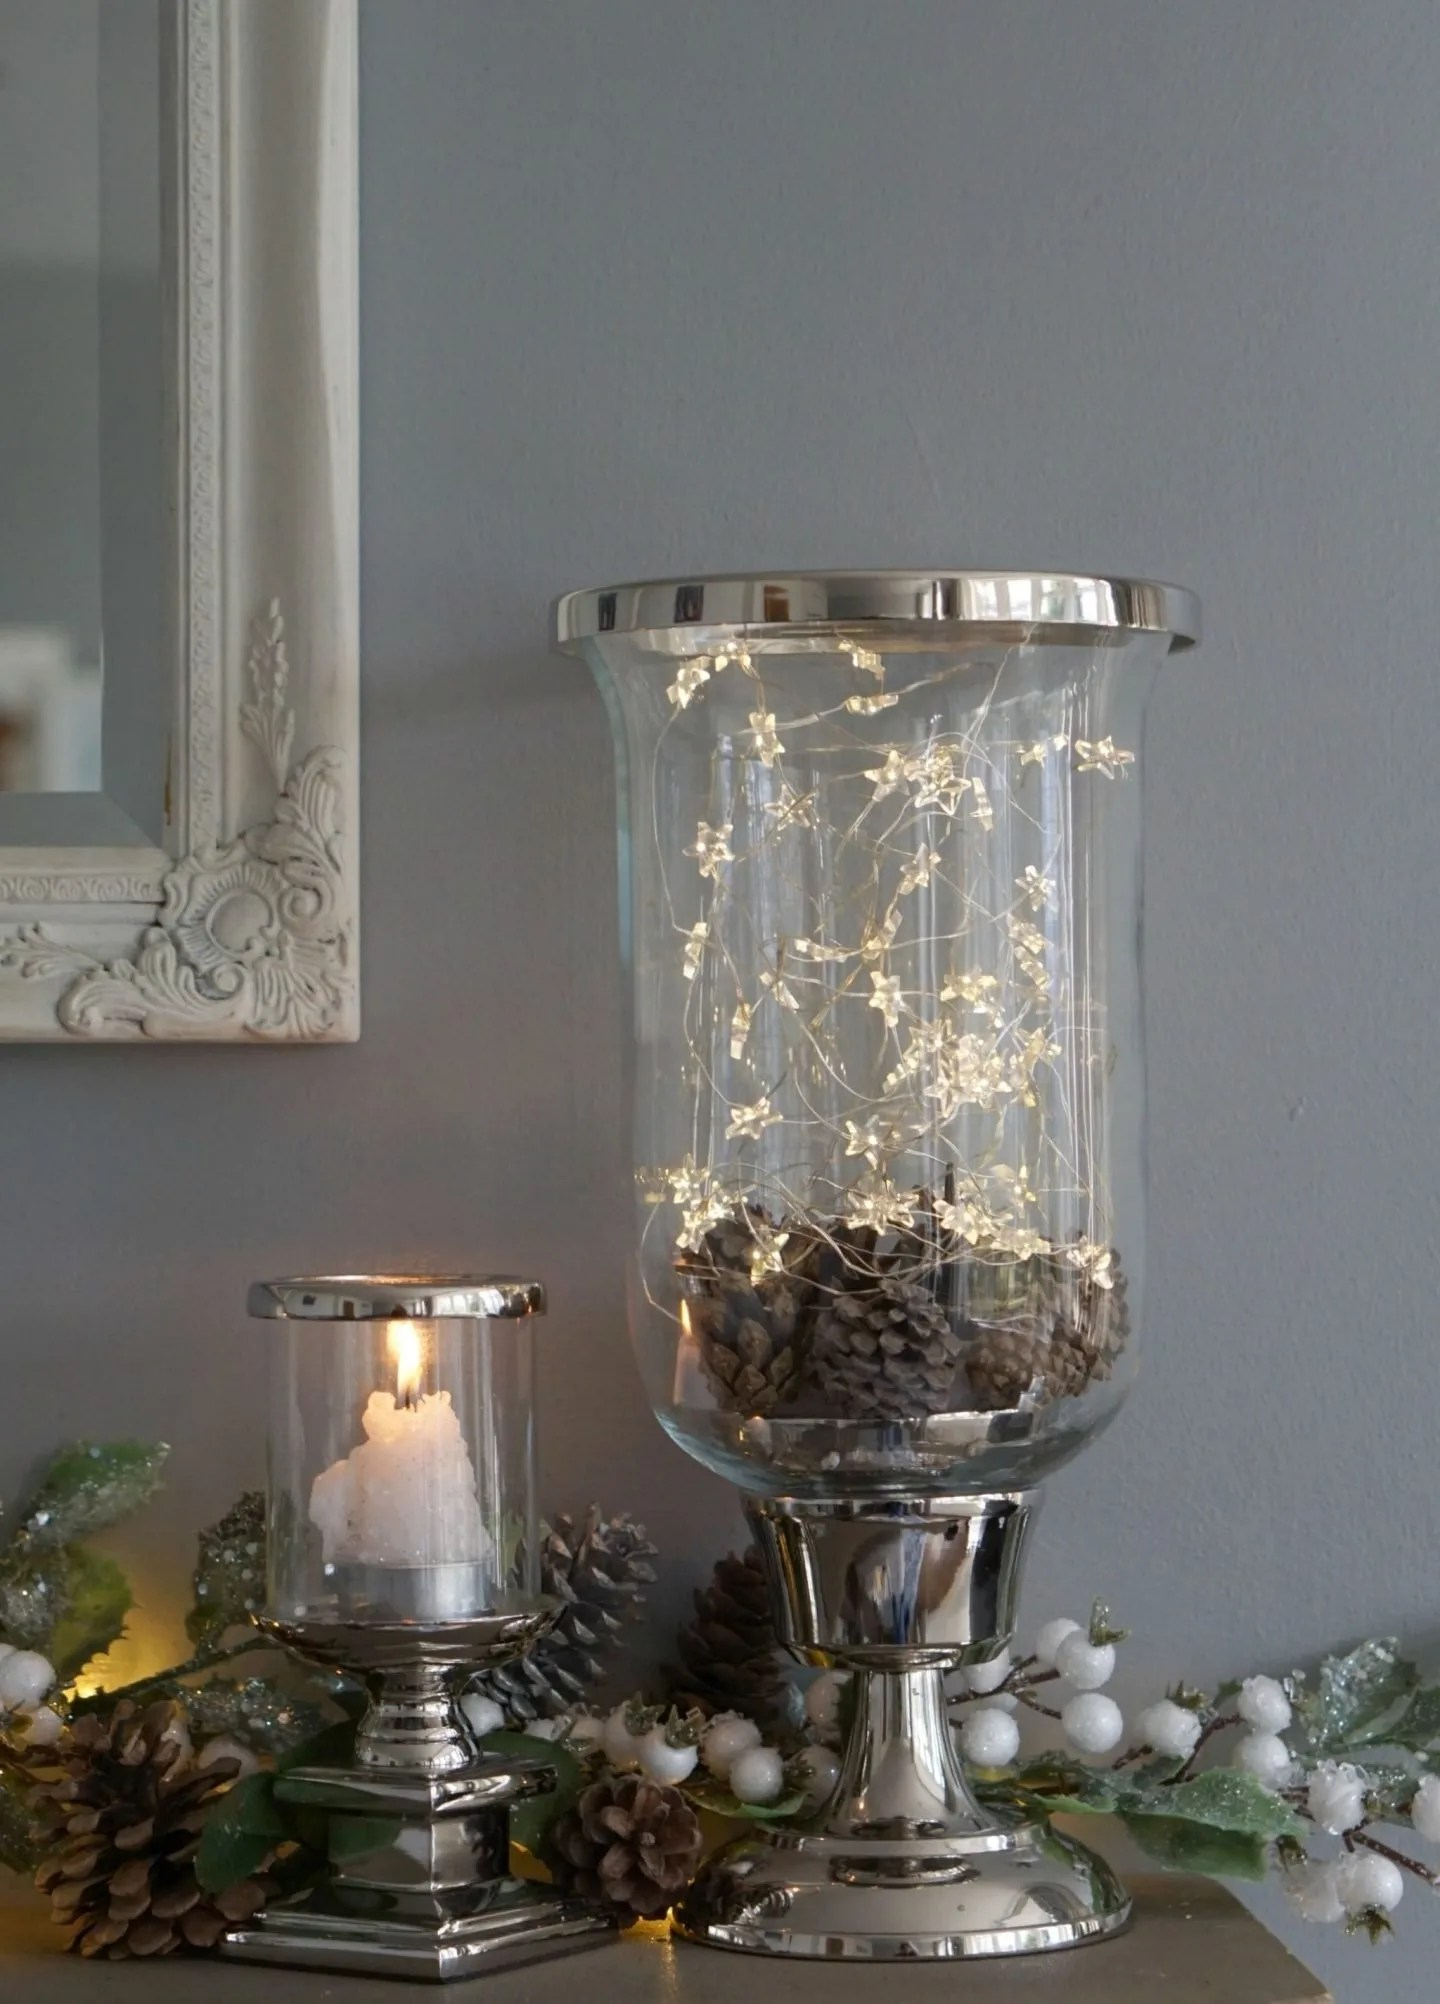 Hurricane Jar with Twinkly Star Lights from Laura Ashely www.extraordinarychaos.com